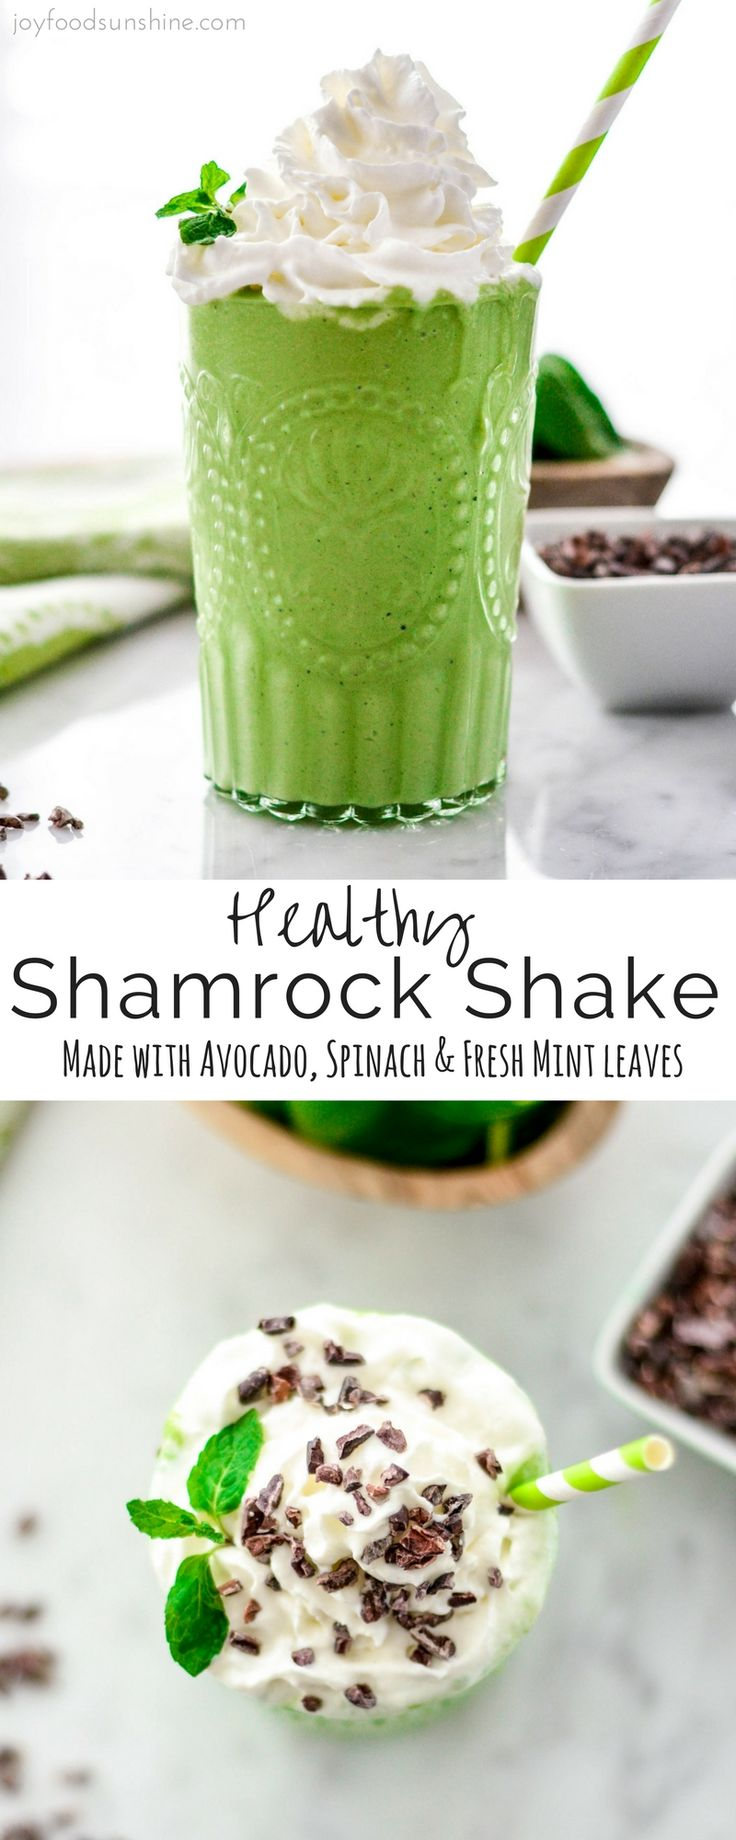 This Healthy Shamrock Shake recipe is made with 8 nutritious ingredients like avocados, spinach & Greek yogurt & is ready in 5 minutes! The perfect St. Patrick's Day treat!